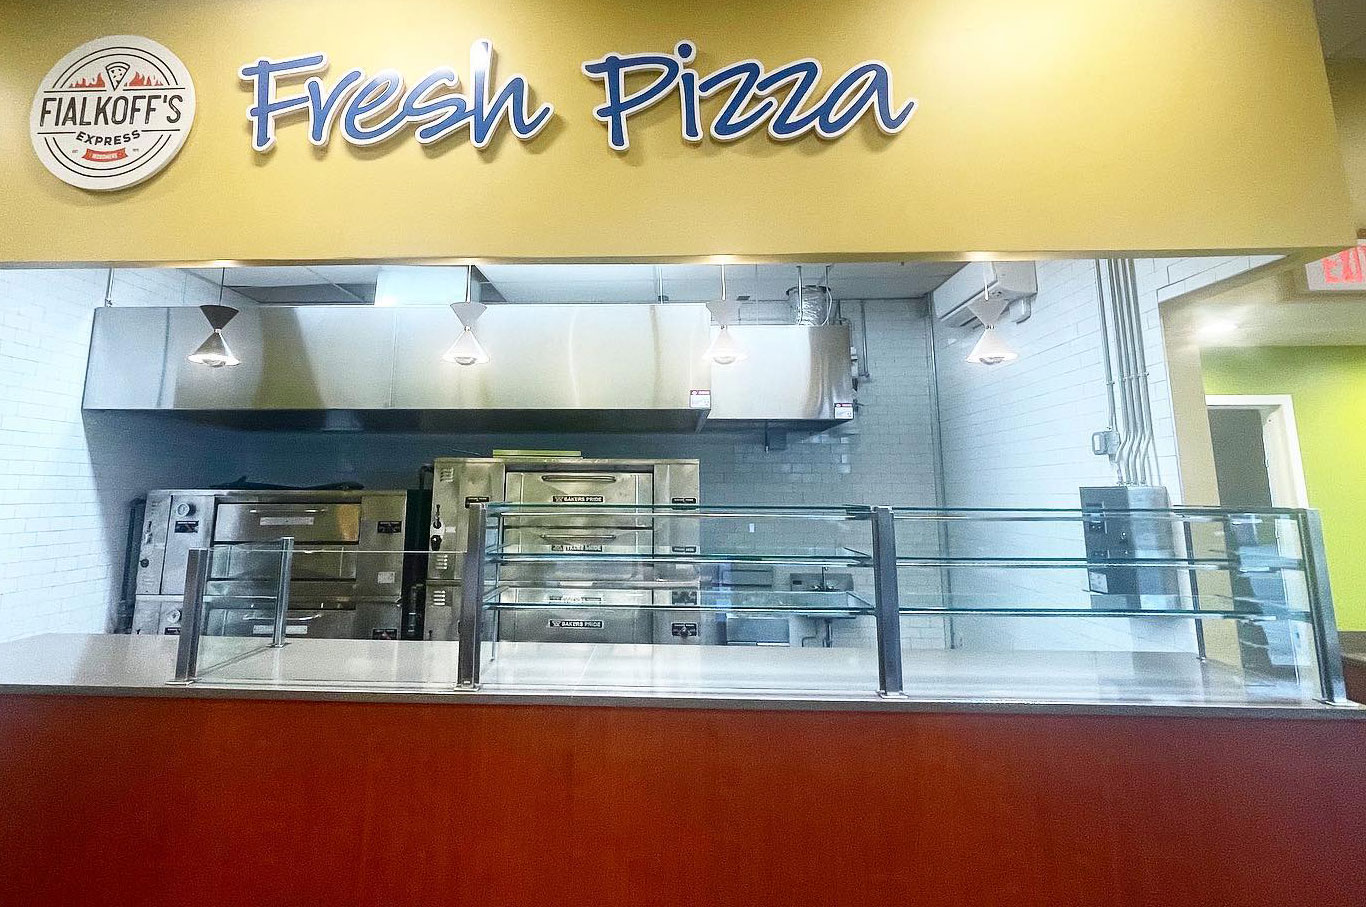 Satin Stainless Steel Food Shield with LED Lights | Fialkoff's Express - Woodmere, NY